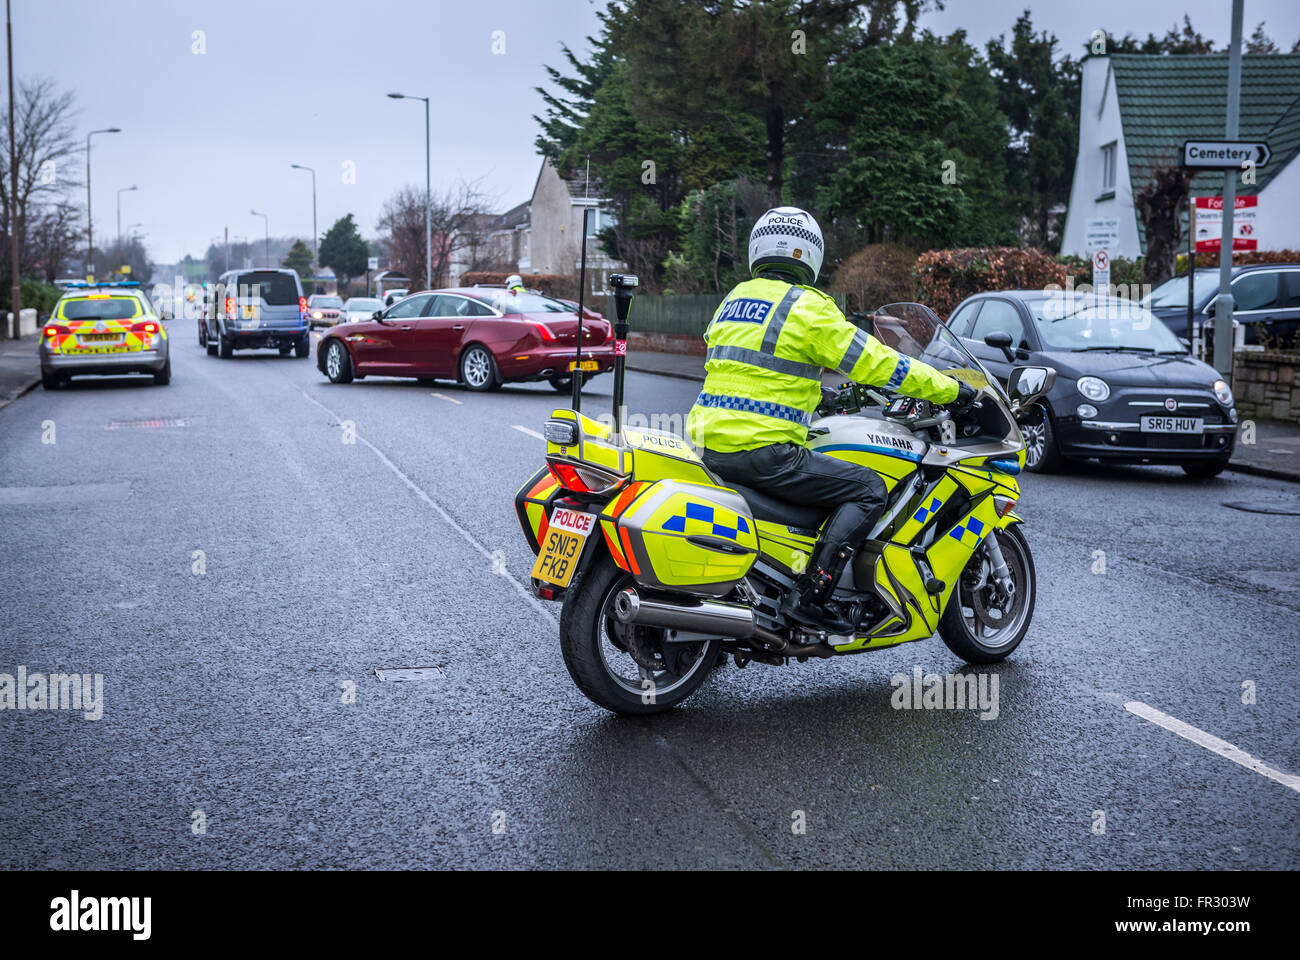 Policeman on motorbike at Drum Brae Street in Edinburgh, Scotland, UK - Stock Image